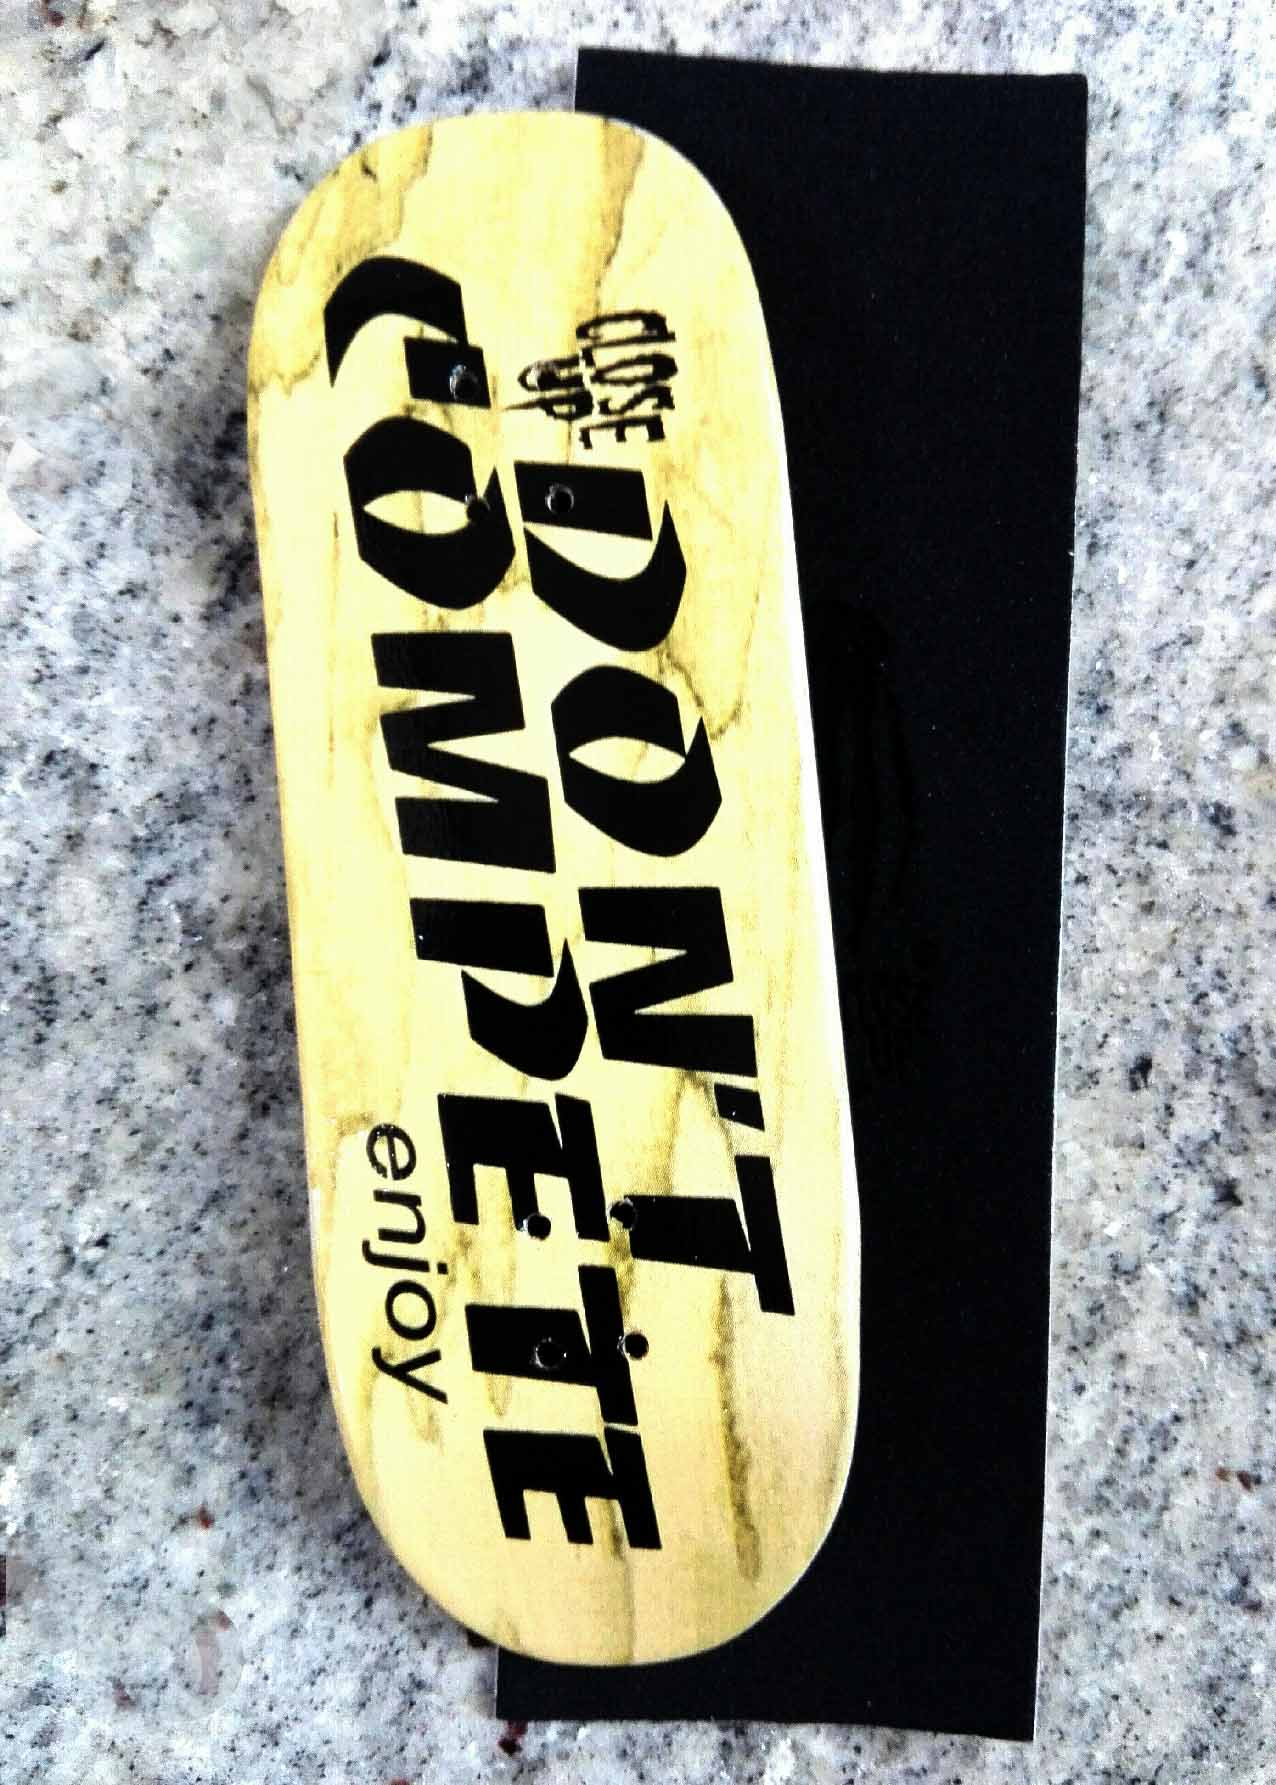 BOARD DON'T COMPETE 33MM MEDIUM CONCAVE + RIPTAPE – 9,50 € ($10,64 USD)